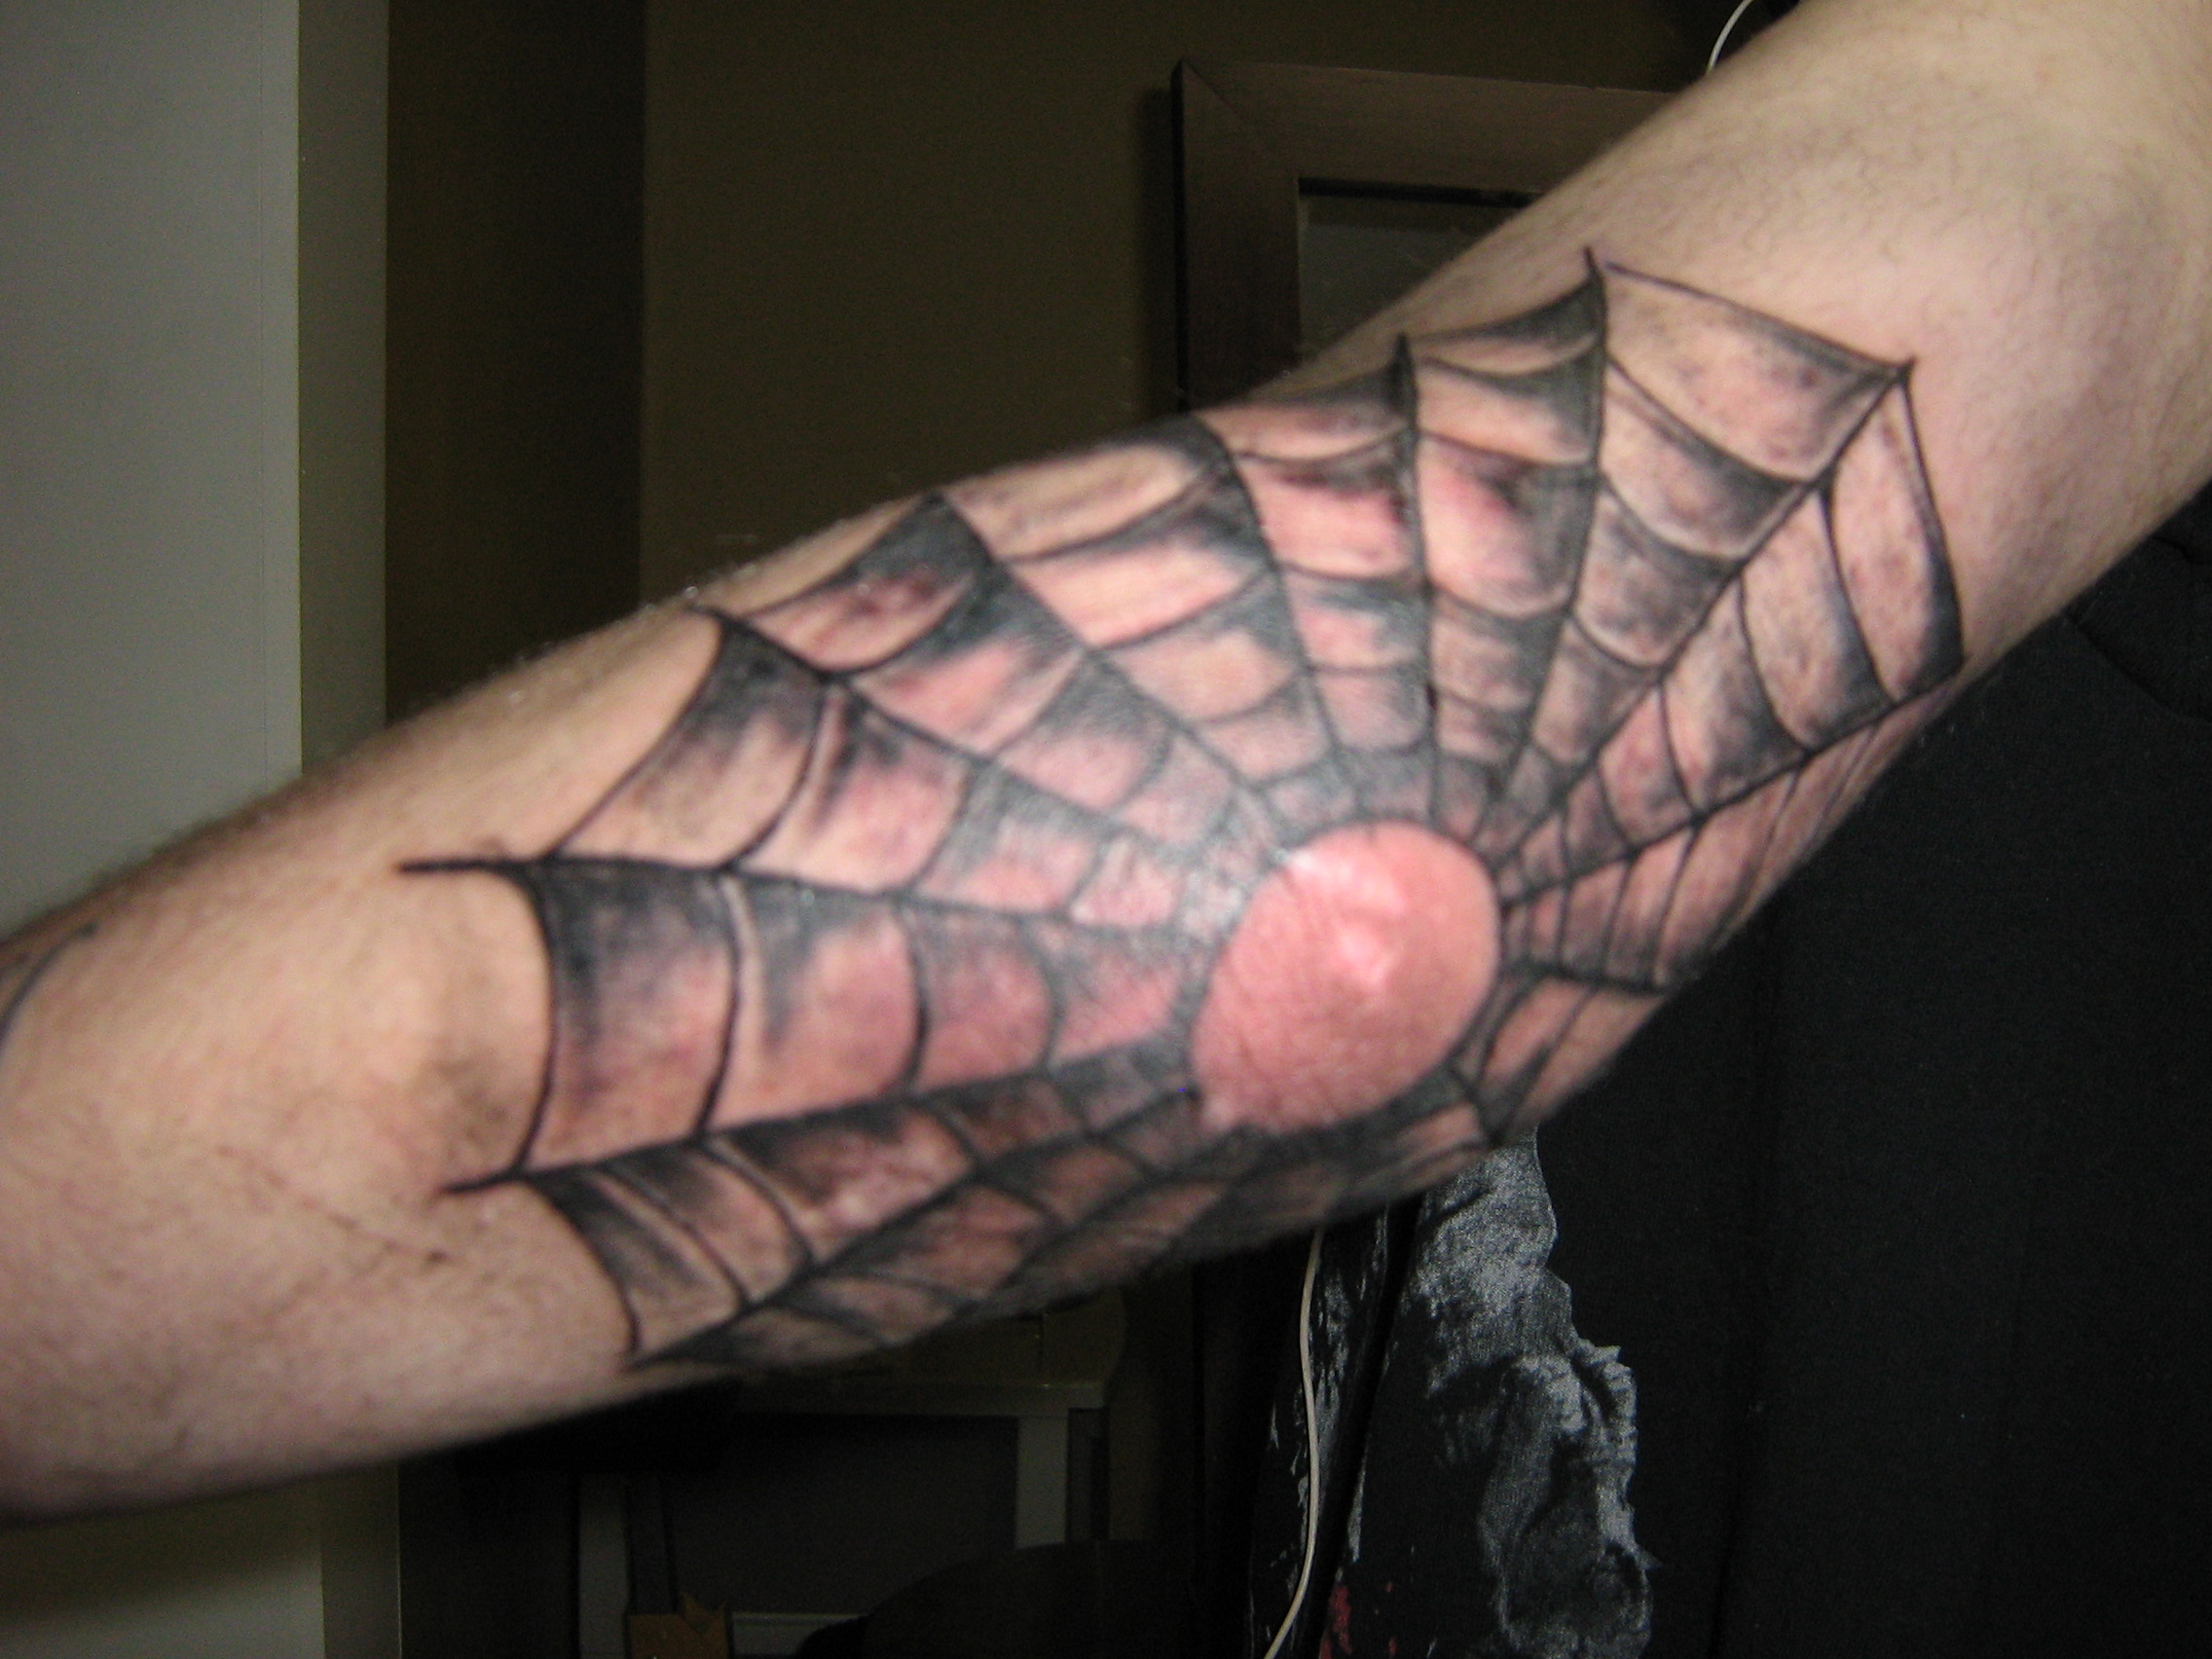 Tattoo of spider web on elbow